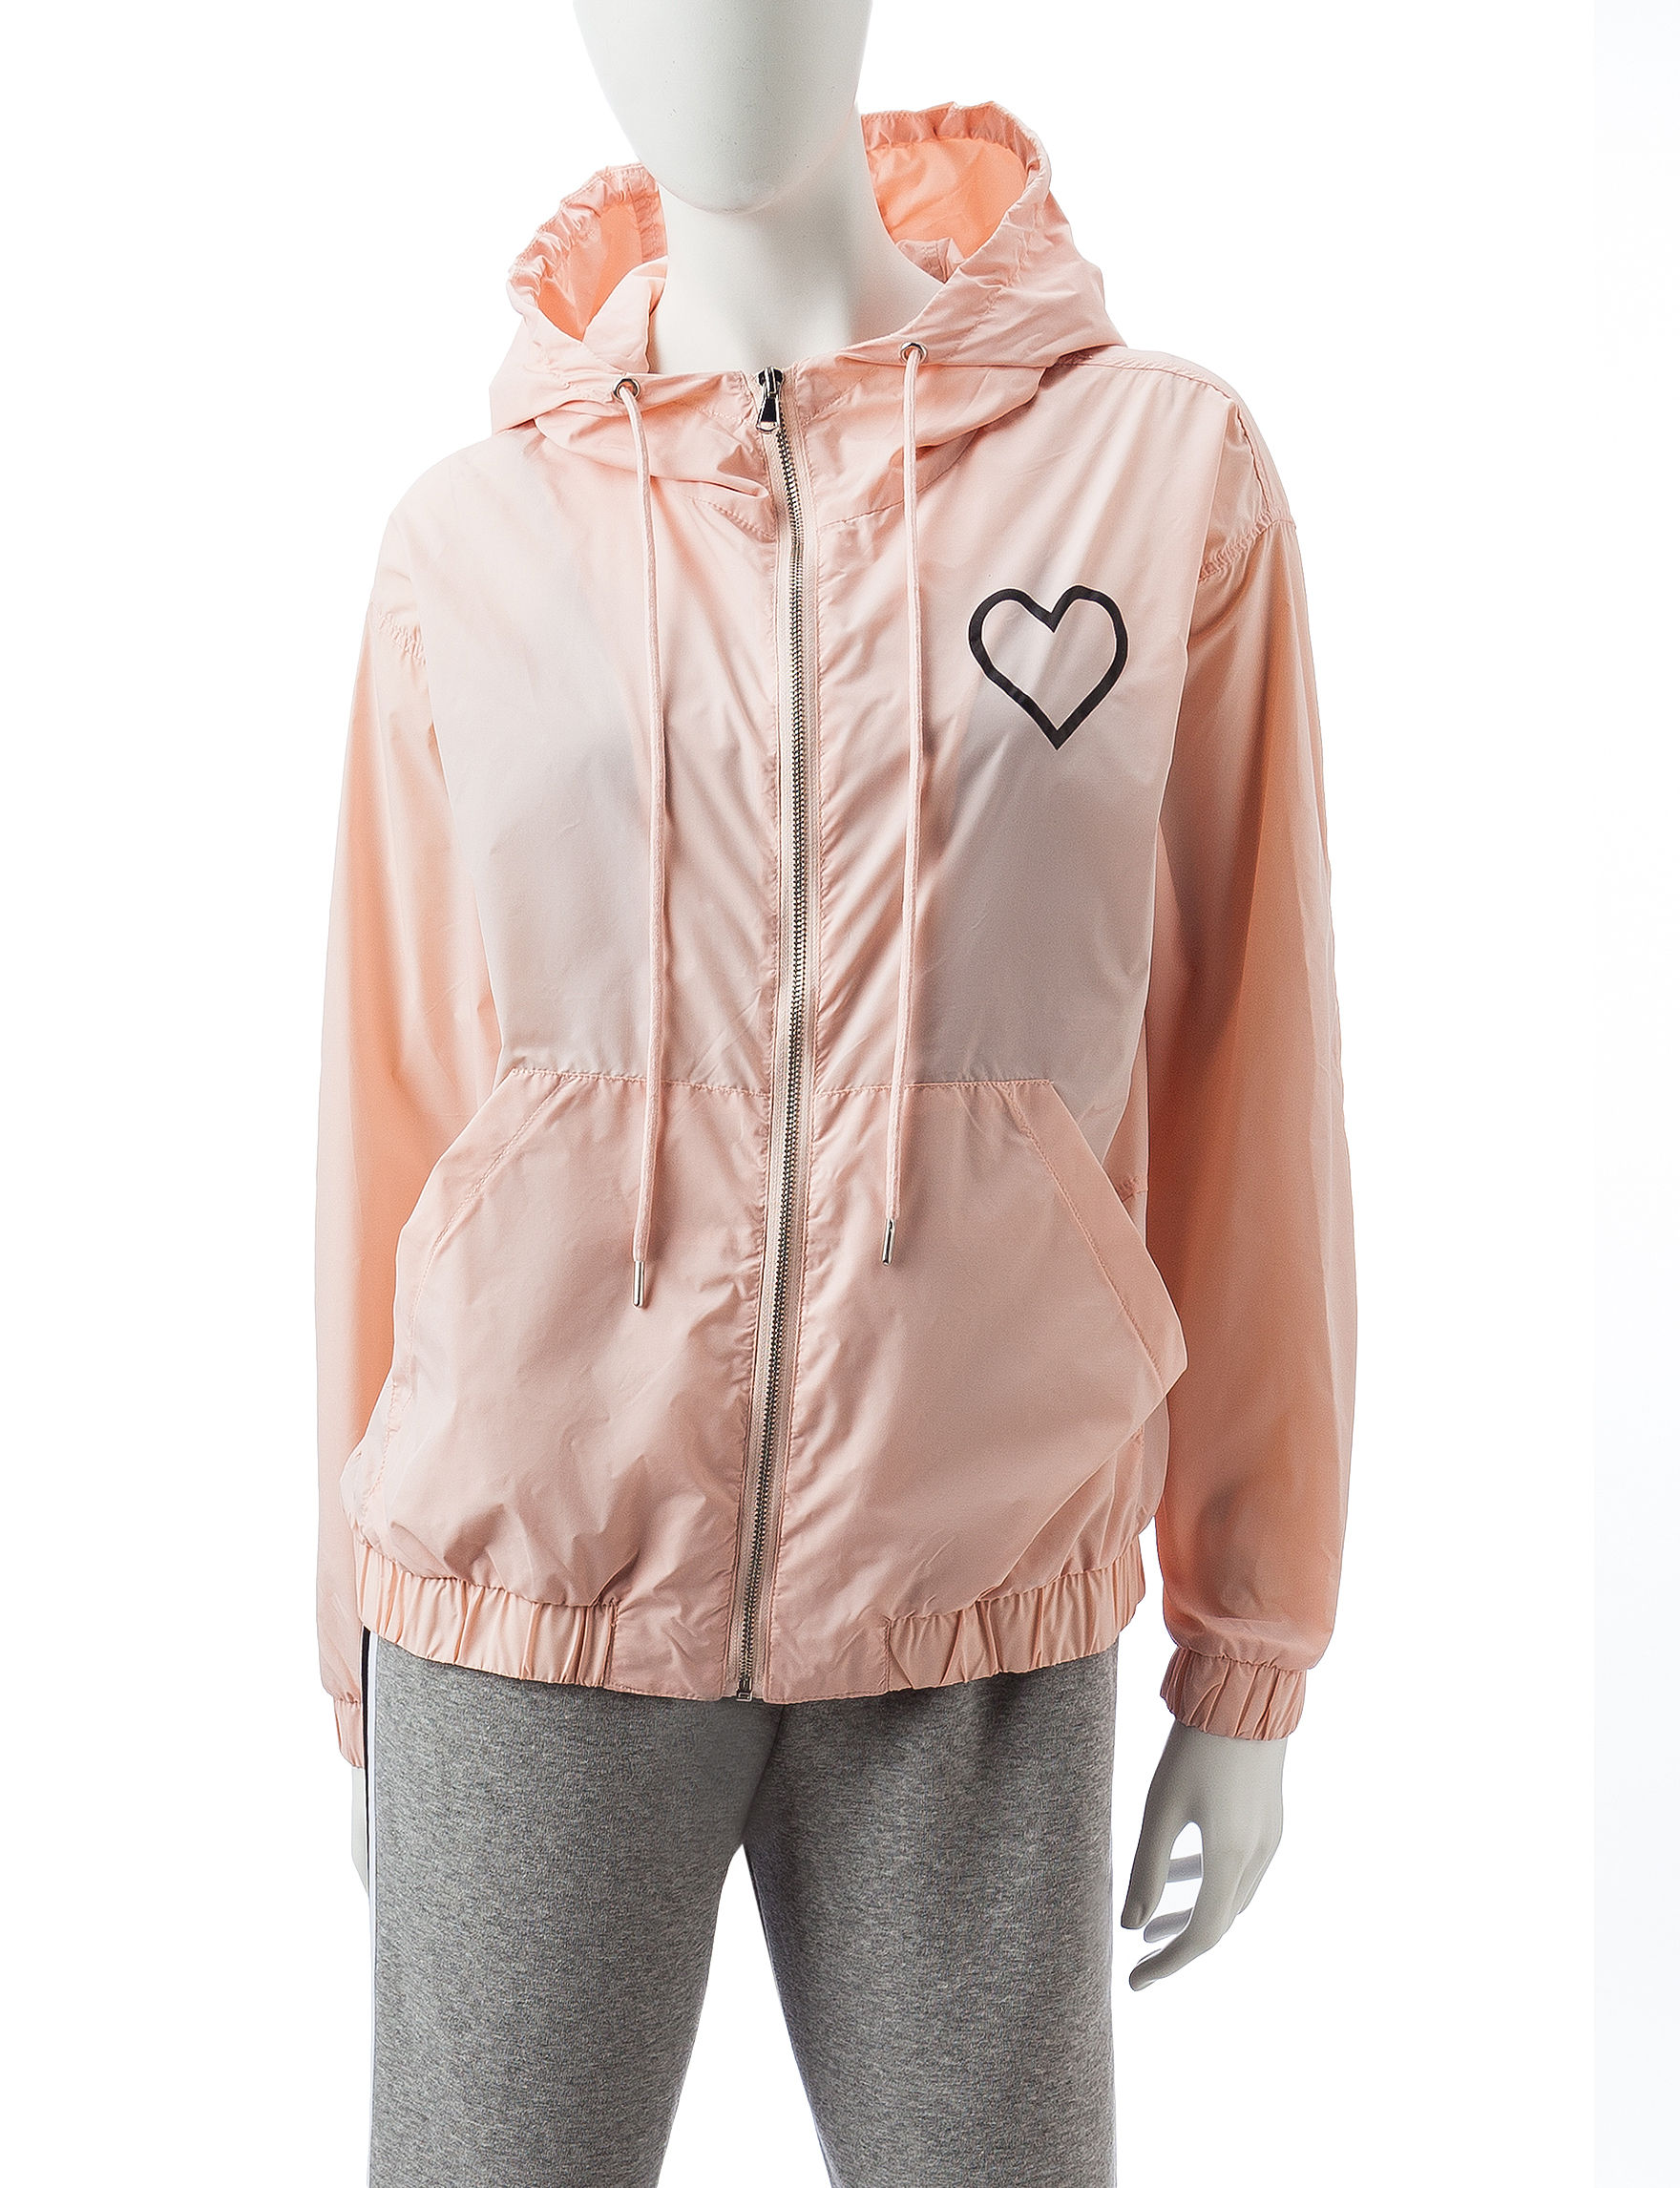 Miss Chievous Blush Pull-overs